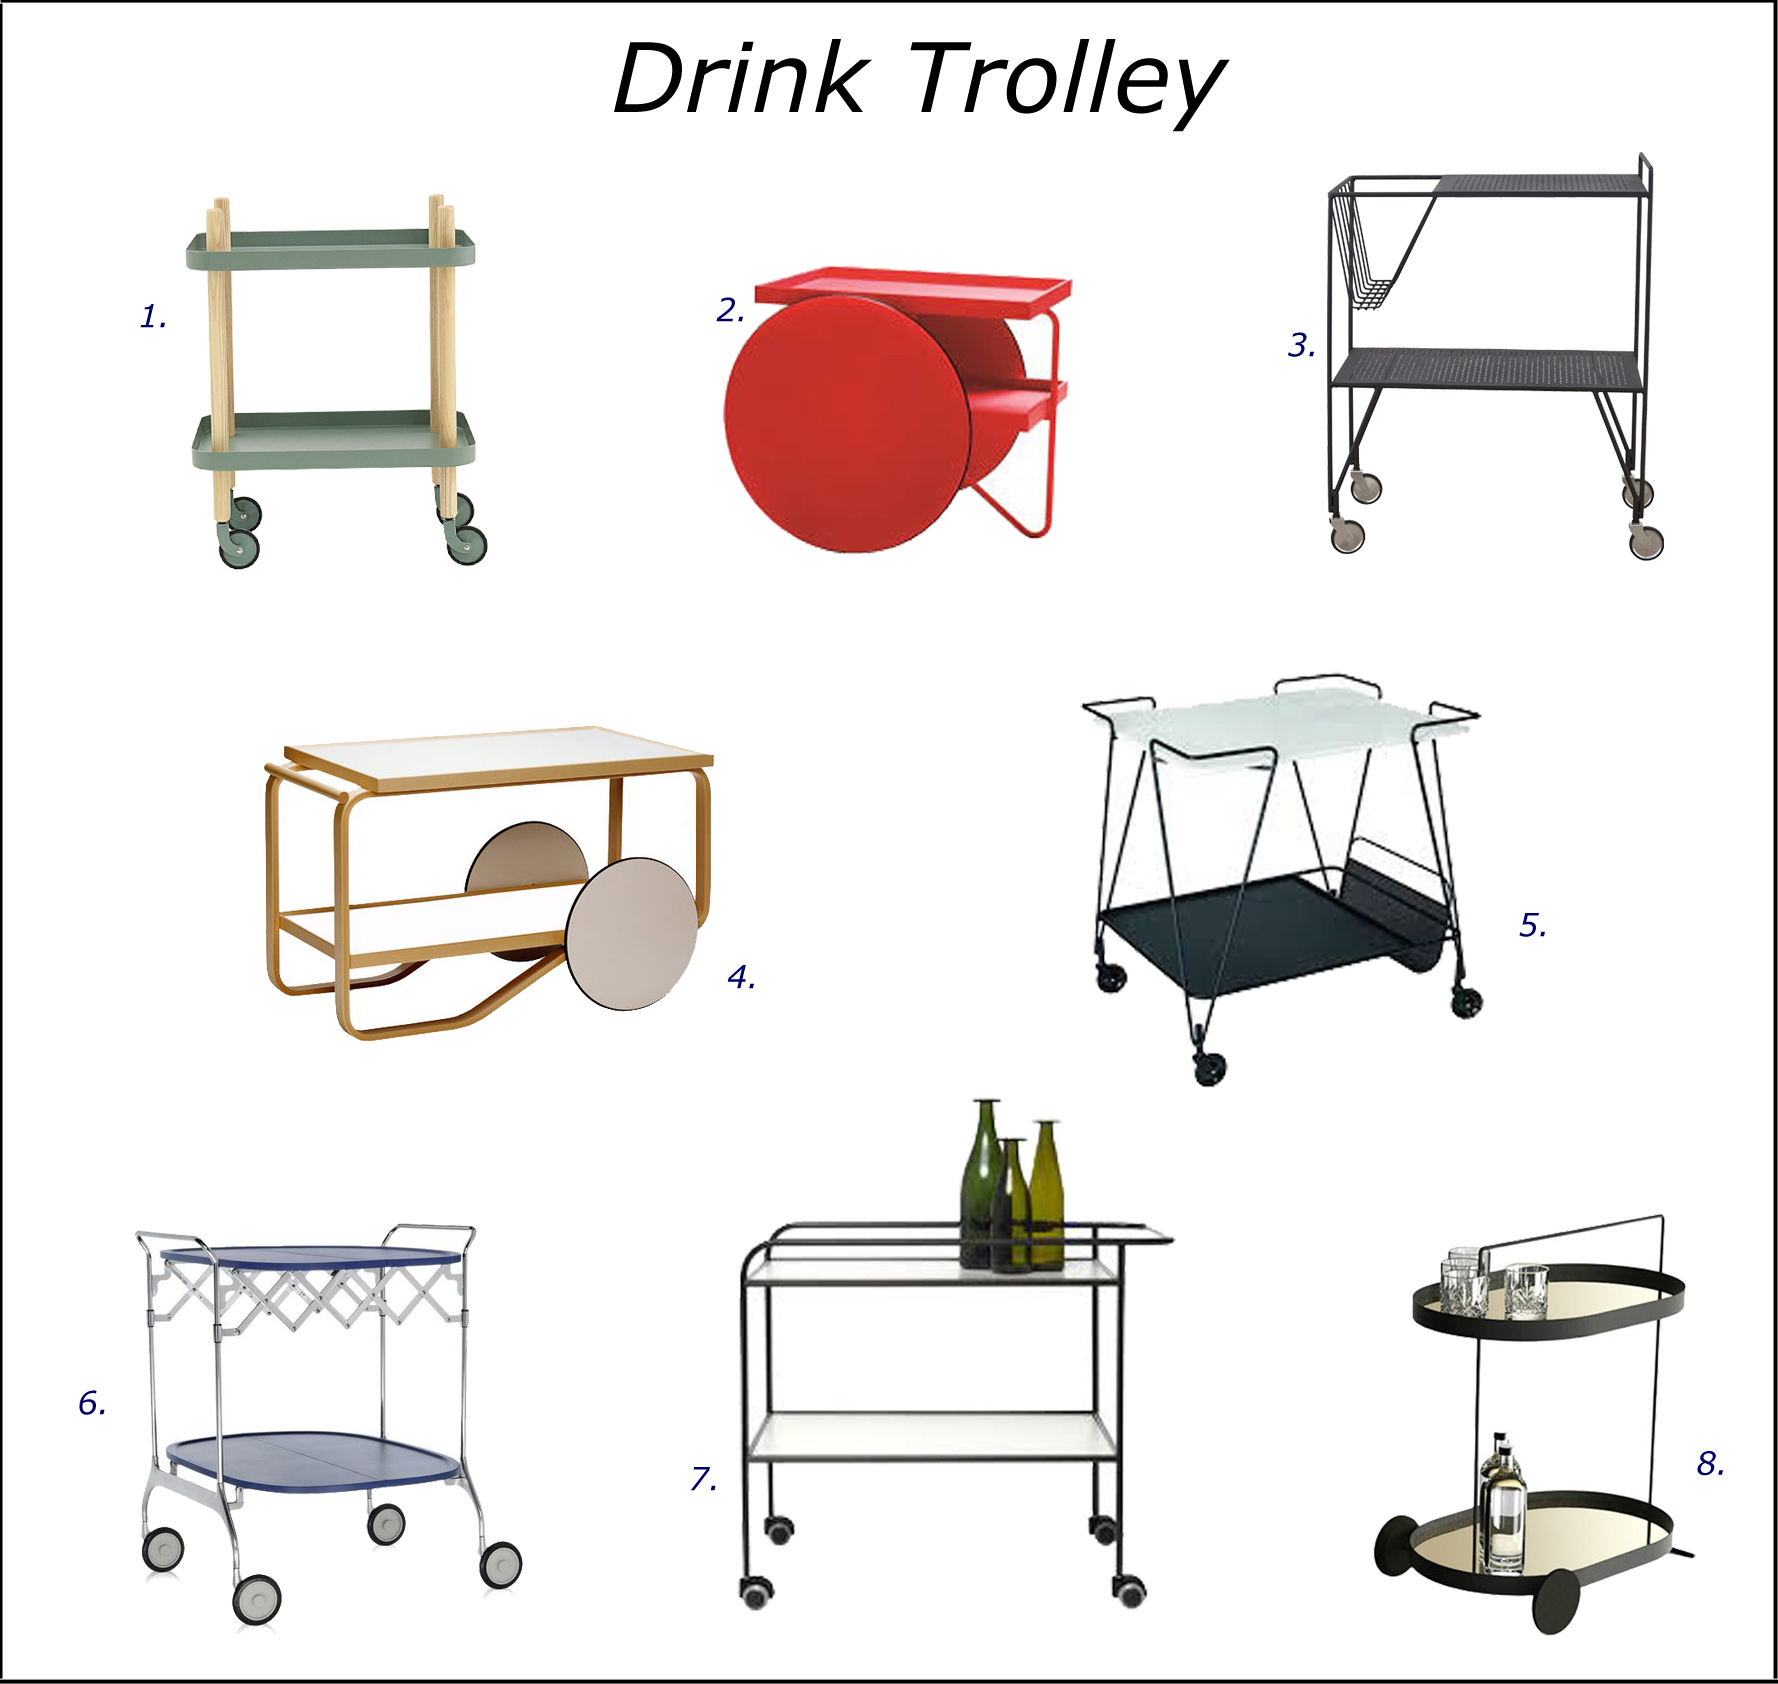 Drink trolley selection